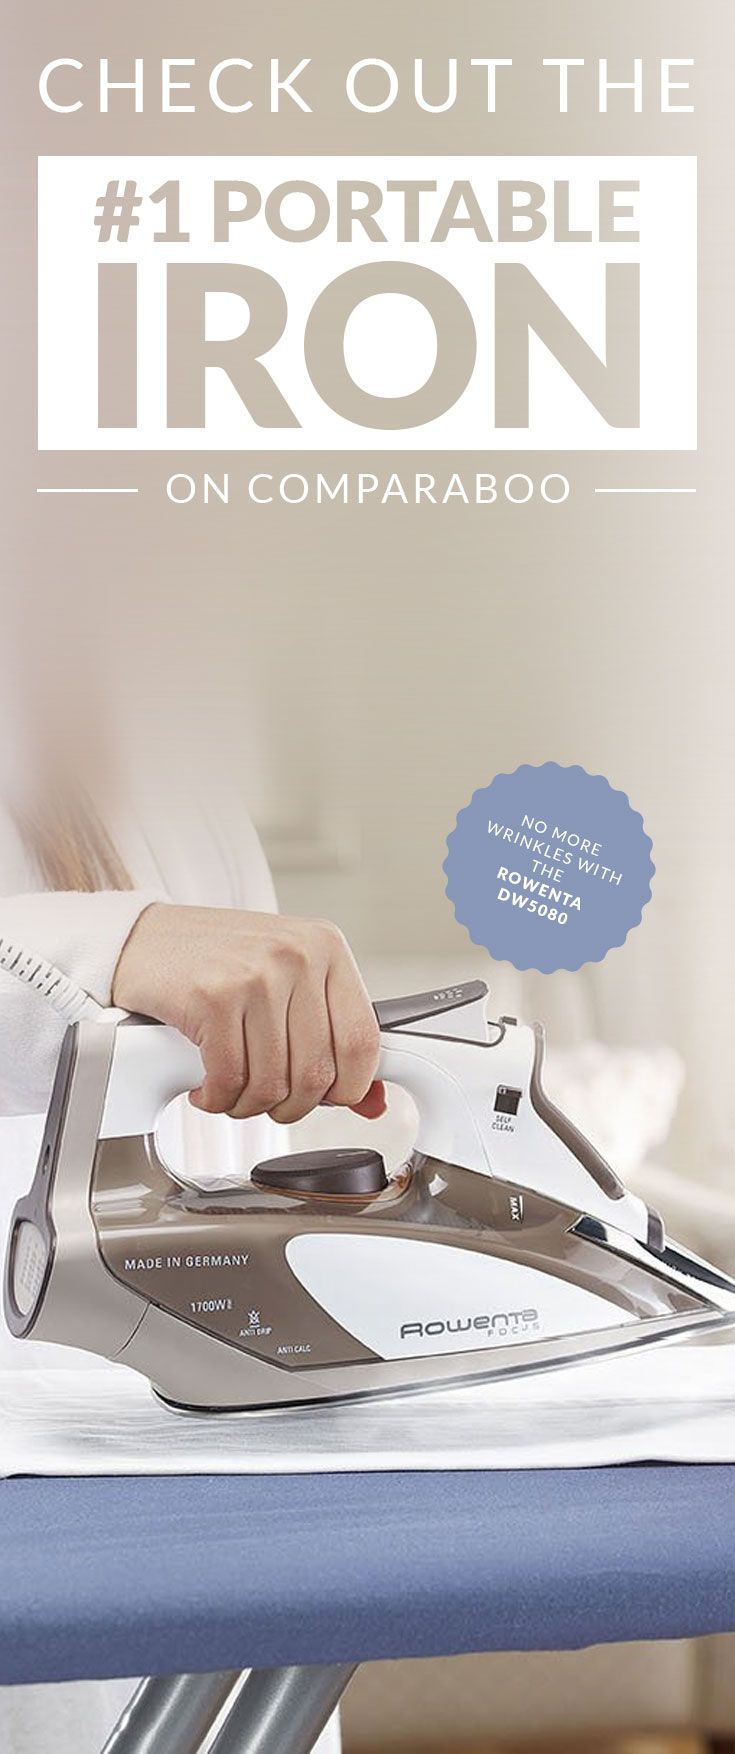 """Comparaboo's #1 top rated portable iron is the """"Rowenta DW5080 Focus Auto-Off 400-Hole Stainless Steel Soleplate."""" It has advanced steam distribution, a self flushing water tank, 3 way auto off, and produces a powerful shot of steam for difficult fabrics. See more features and the other top portable irons at www.comparaboo.com  